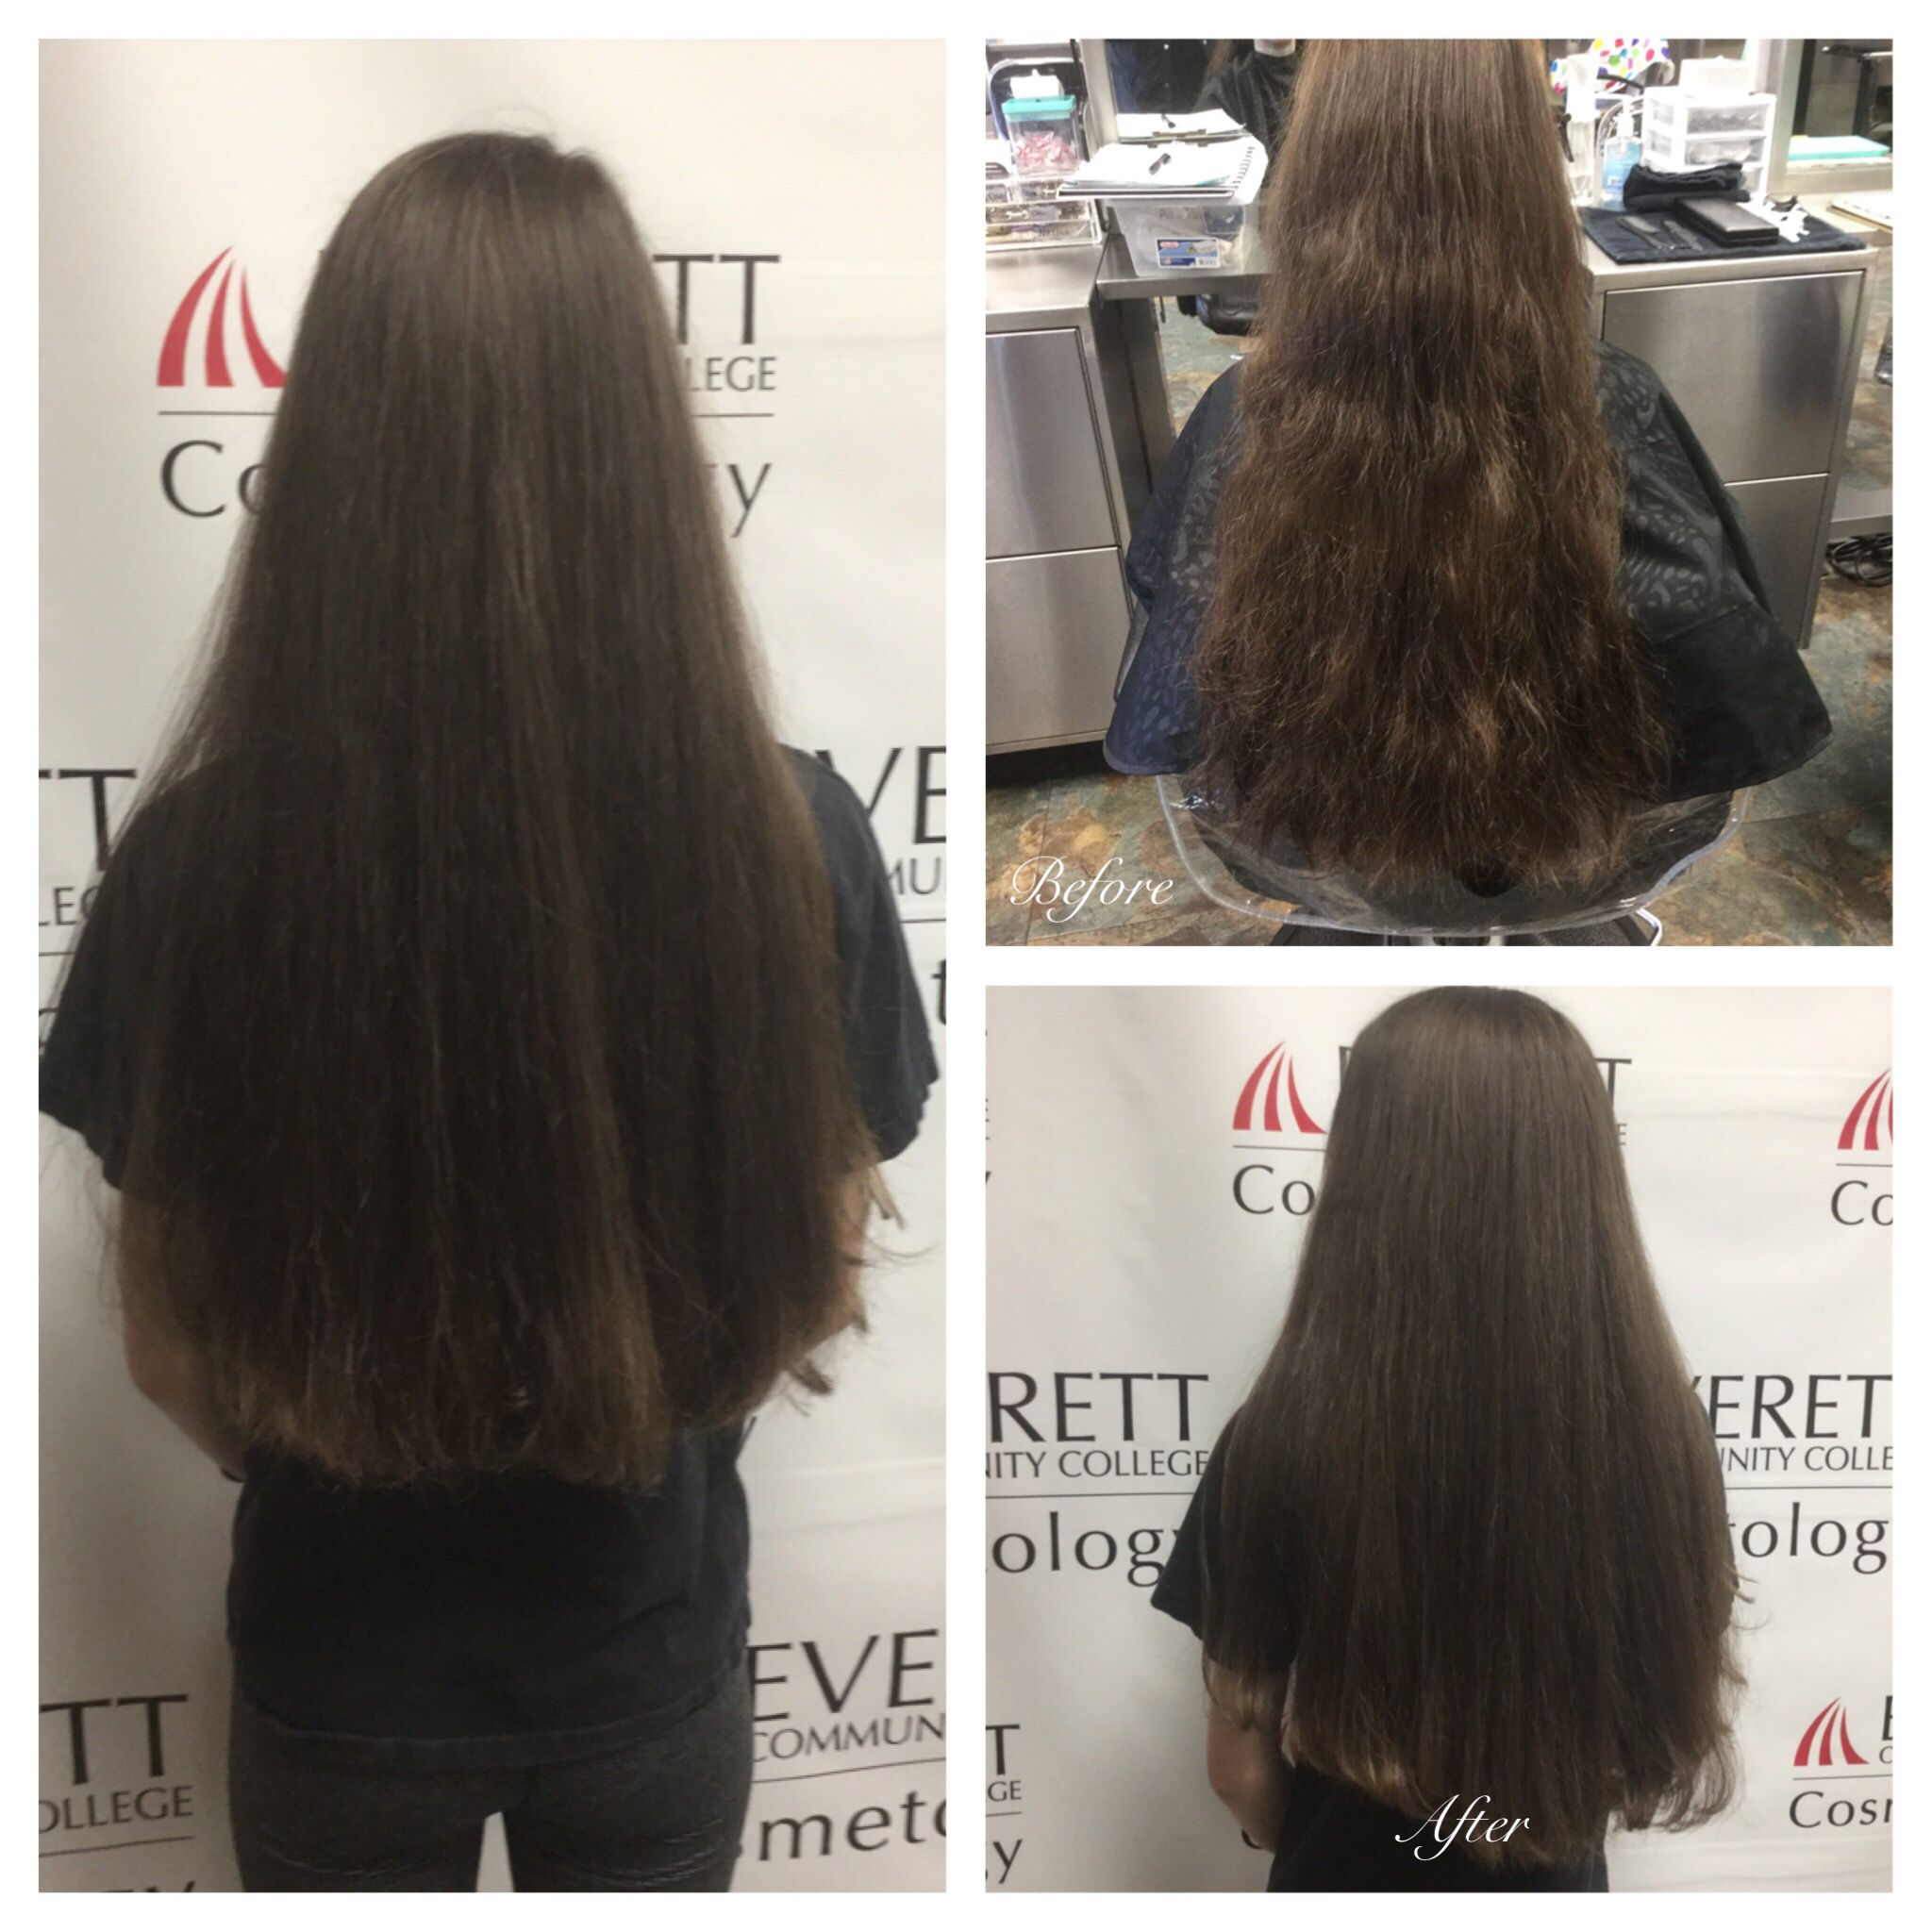 3 off all over blunt haircut using shears shampooed with keracare off all over blunt haircut using shears shampooed with keracare anti dandruff shampoo and conditioner winobraniefo Gallery